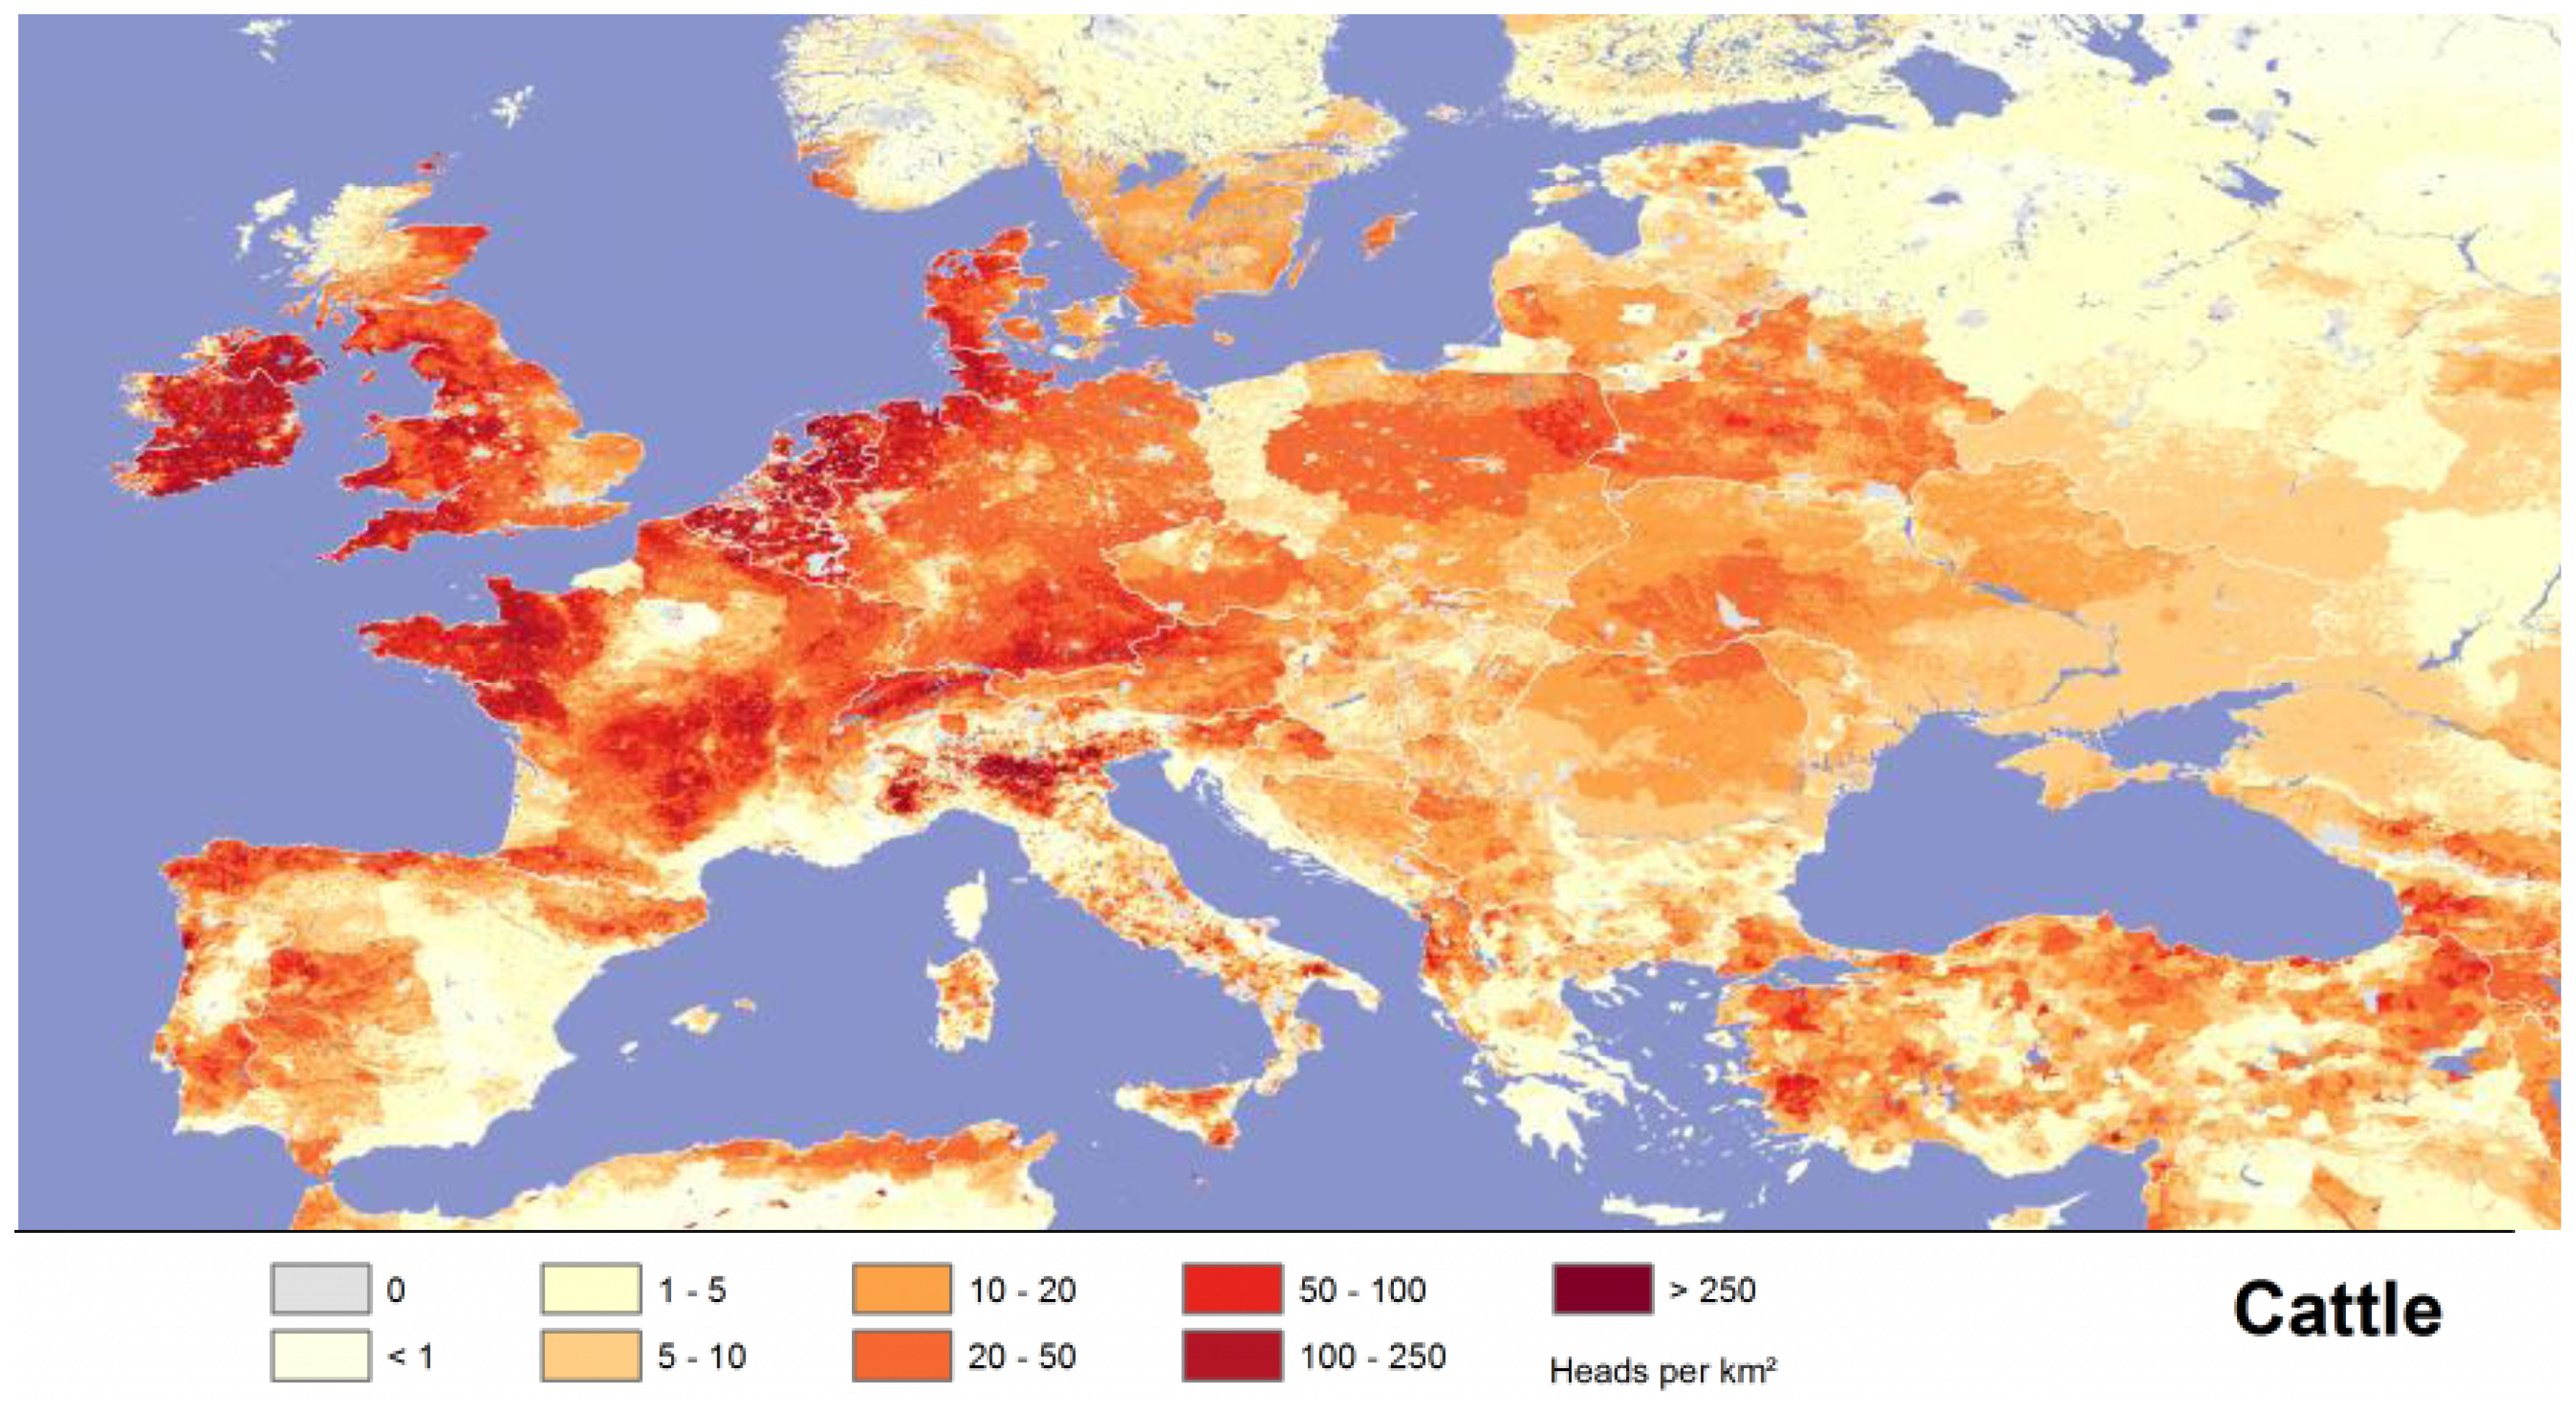 Current situation and future prospects for beef production in Europe